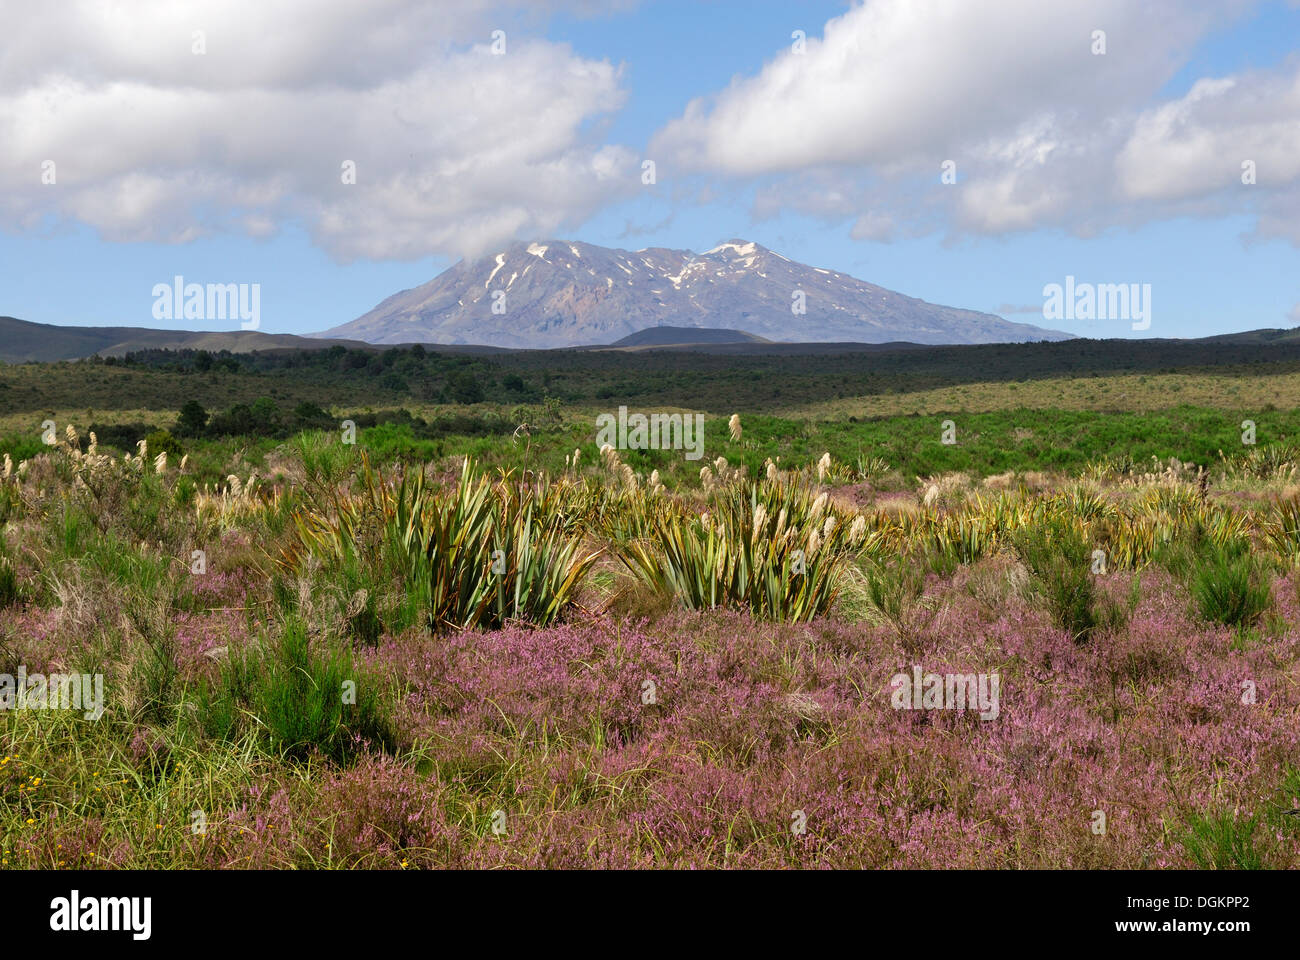 Mount Ruapehu seen from State Highway 47, North Island, New Zealand - Stock Image